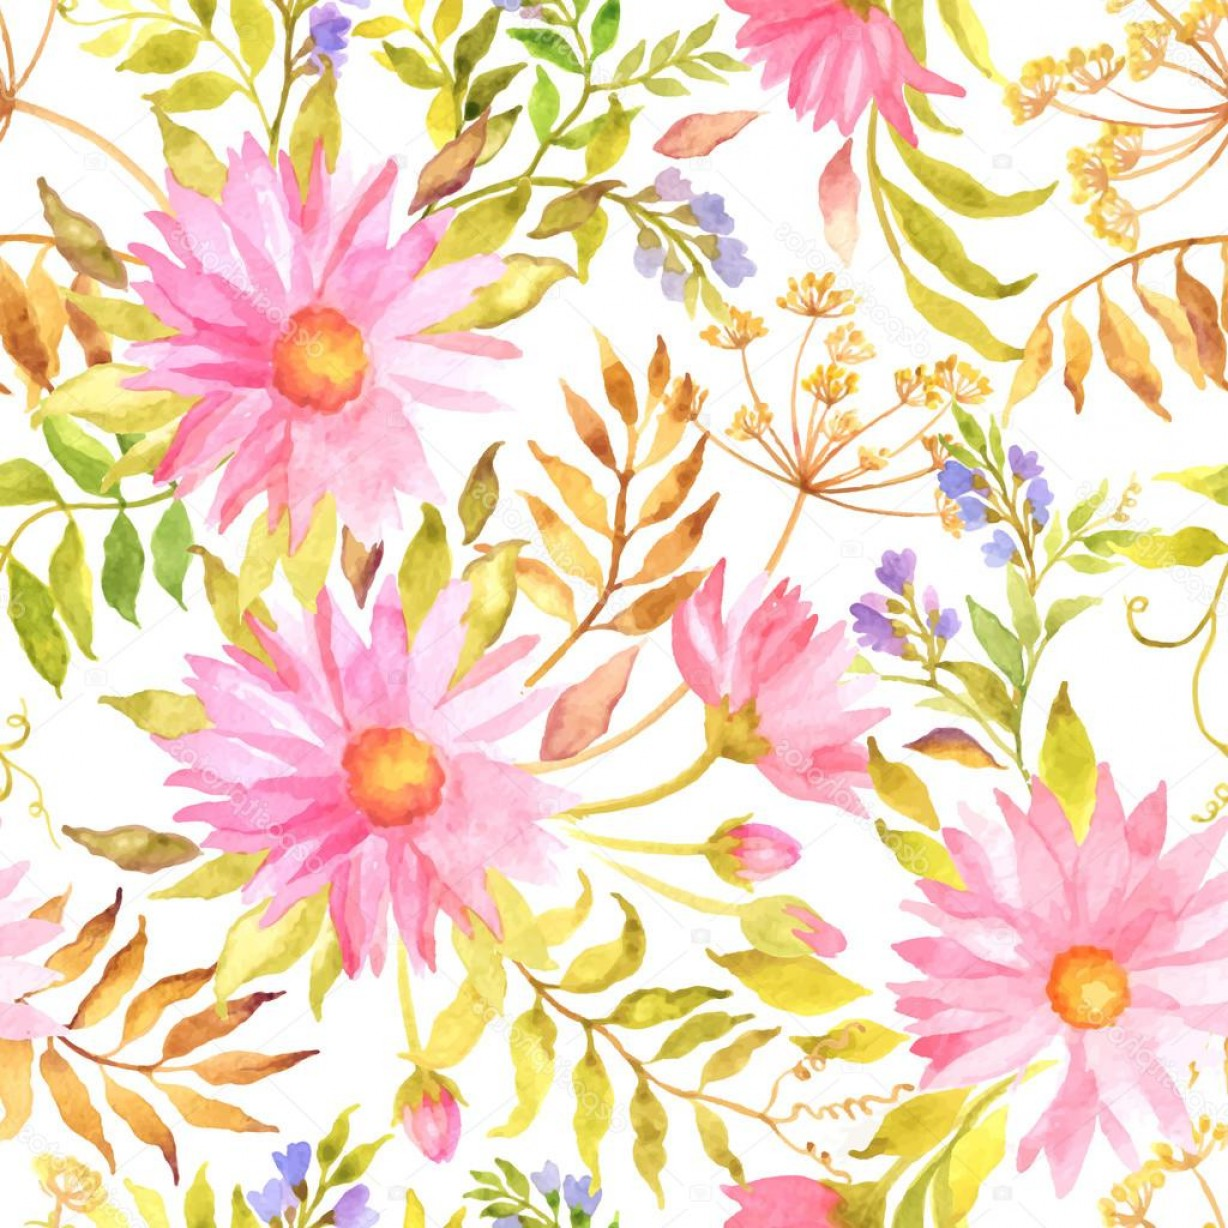 Watercolor Floral Background Vector: Stock Illustration Seamless Watercolor Floral Pattern